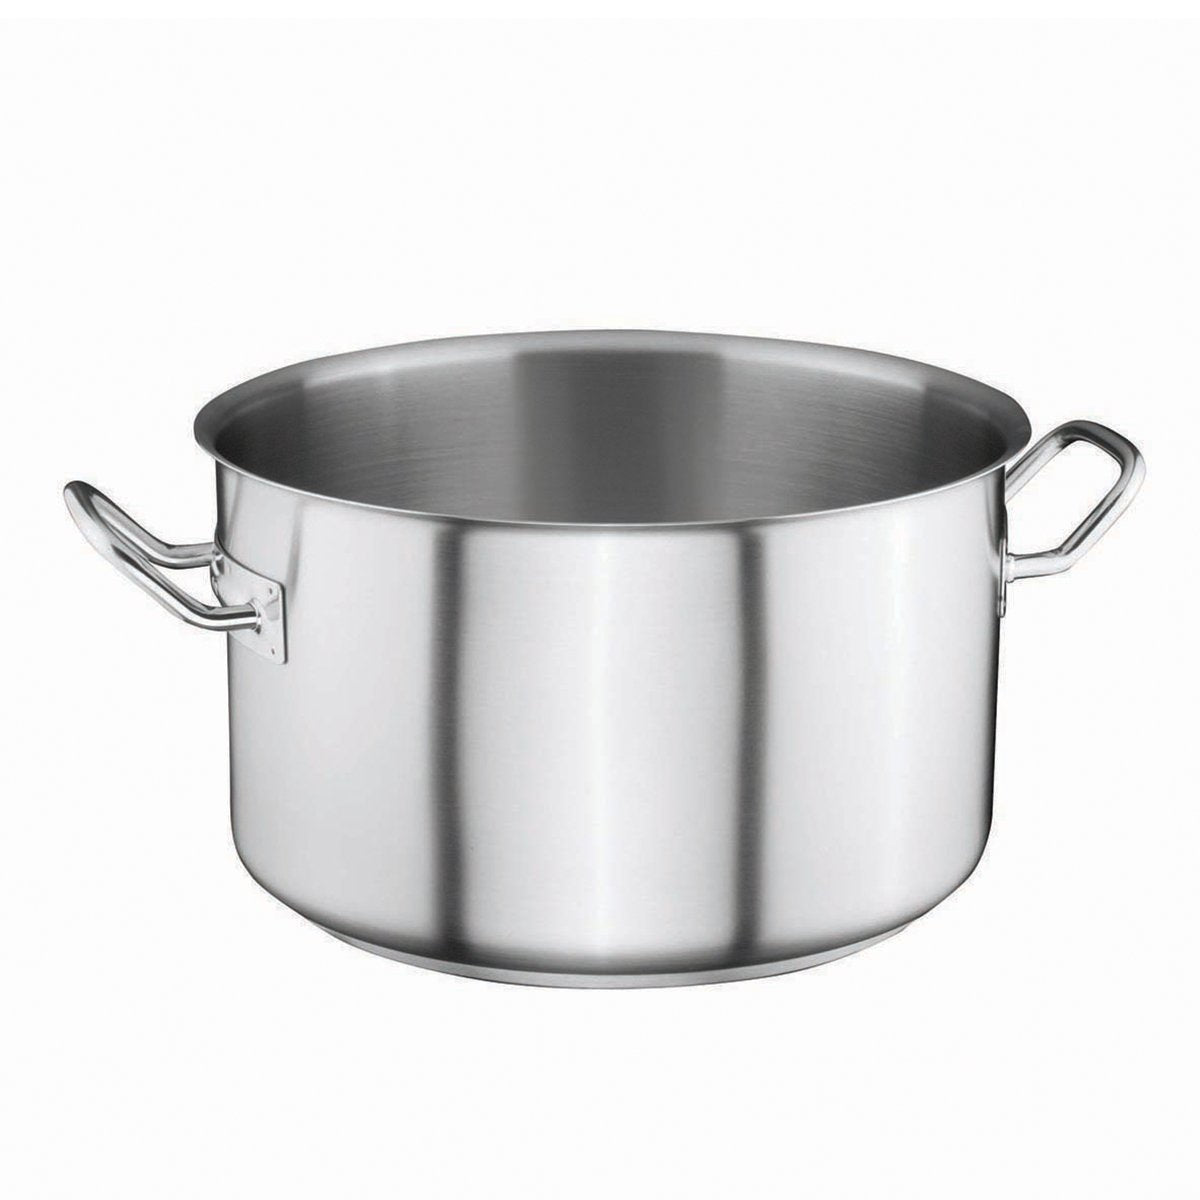 (0121.02019.21) 20*19 STOCK POT SATIN FINISHED, INDUCTION - Mabrook Hotel Supplies